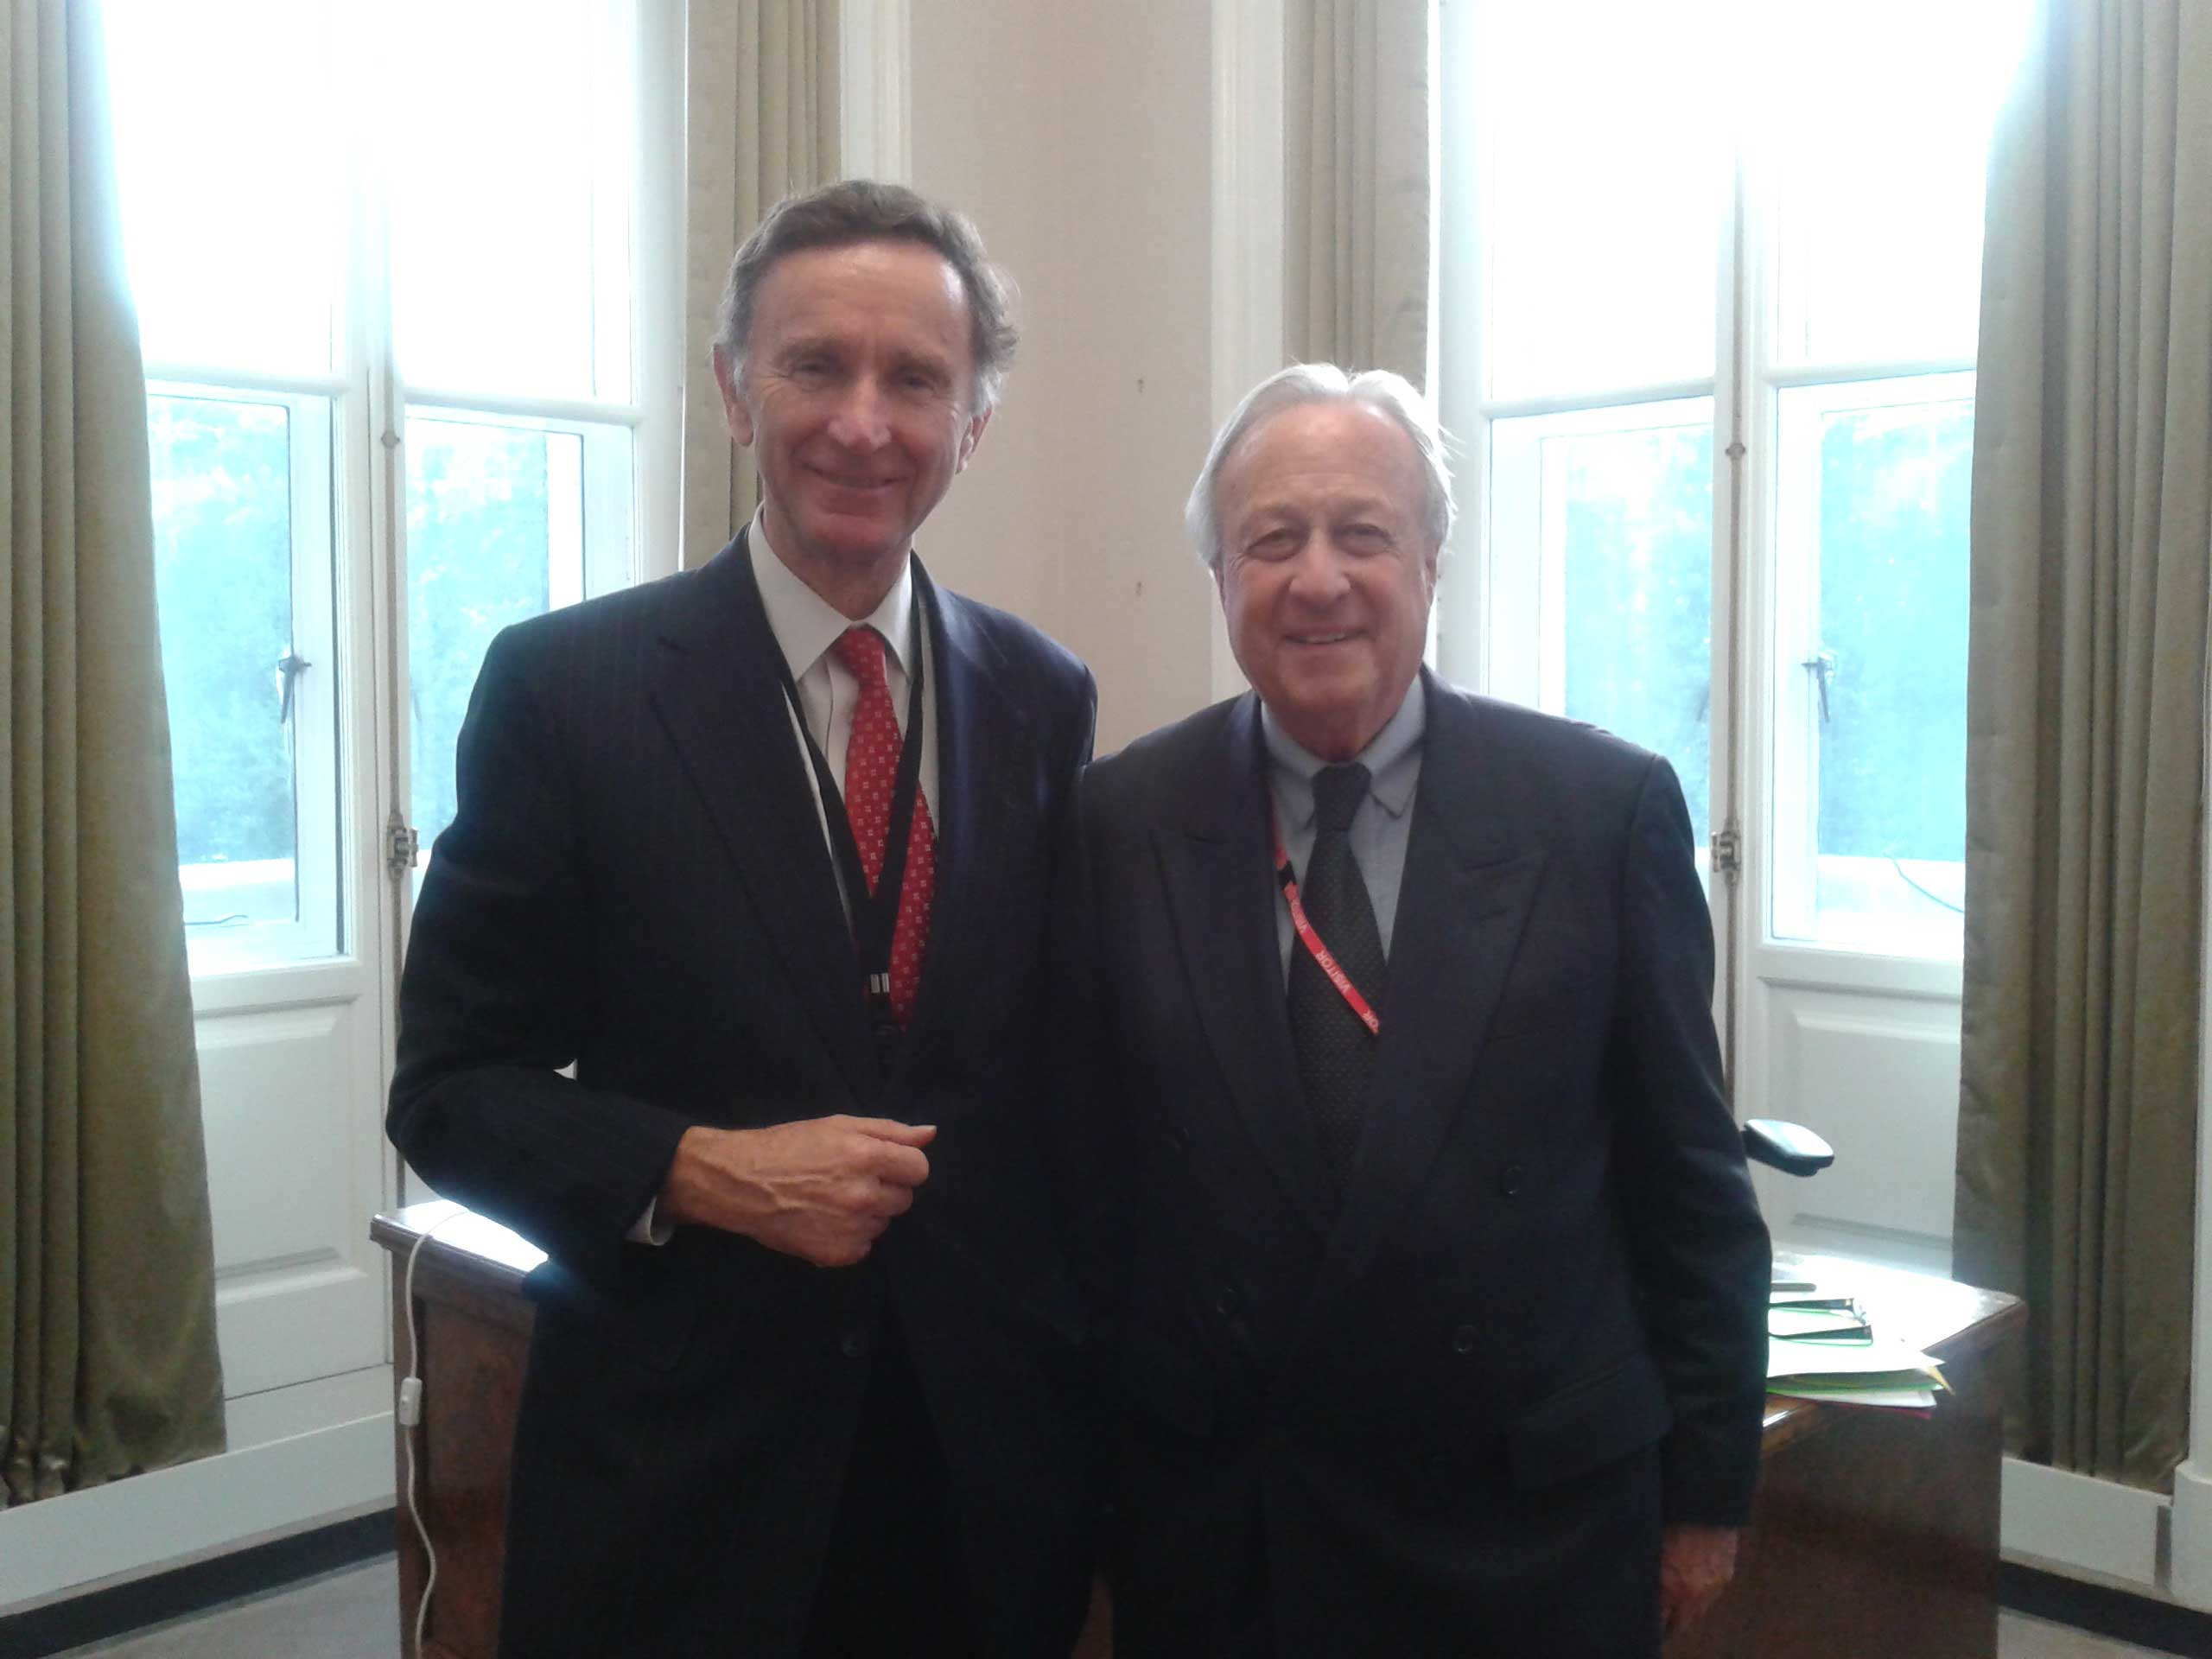 Ben Chapman briefed Lord Green about the Network